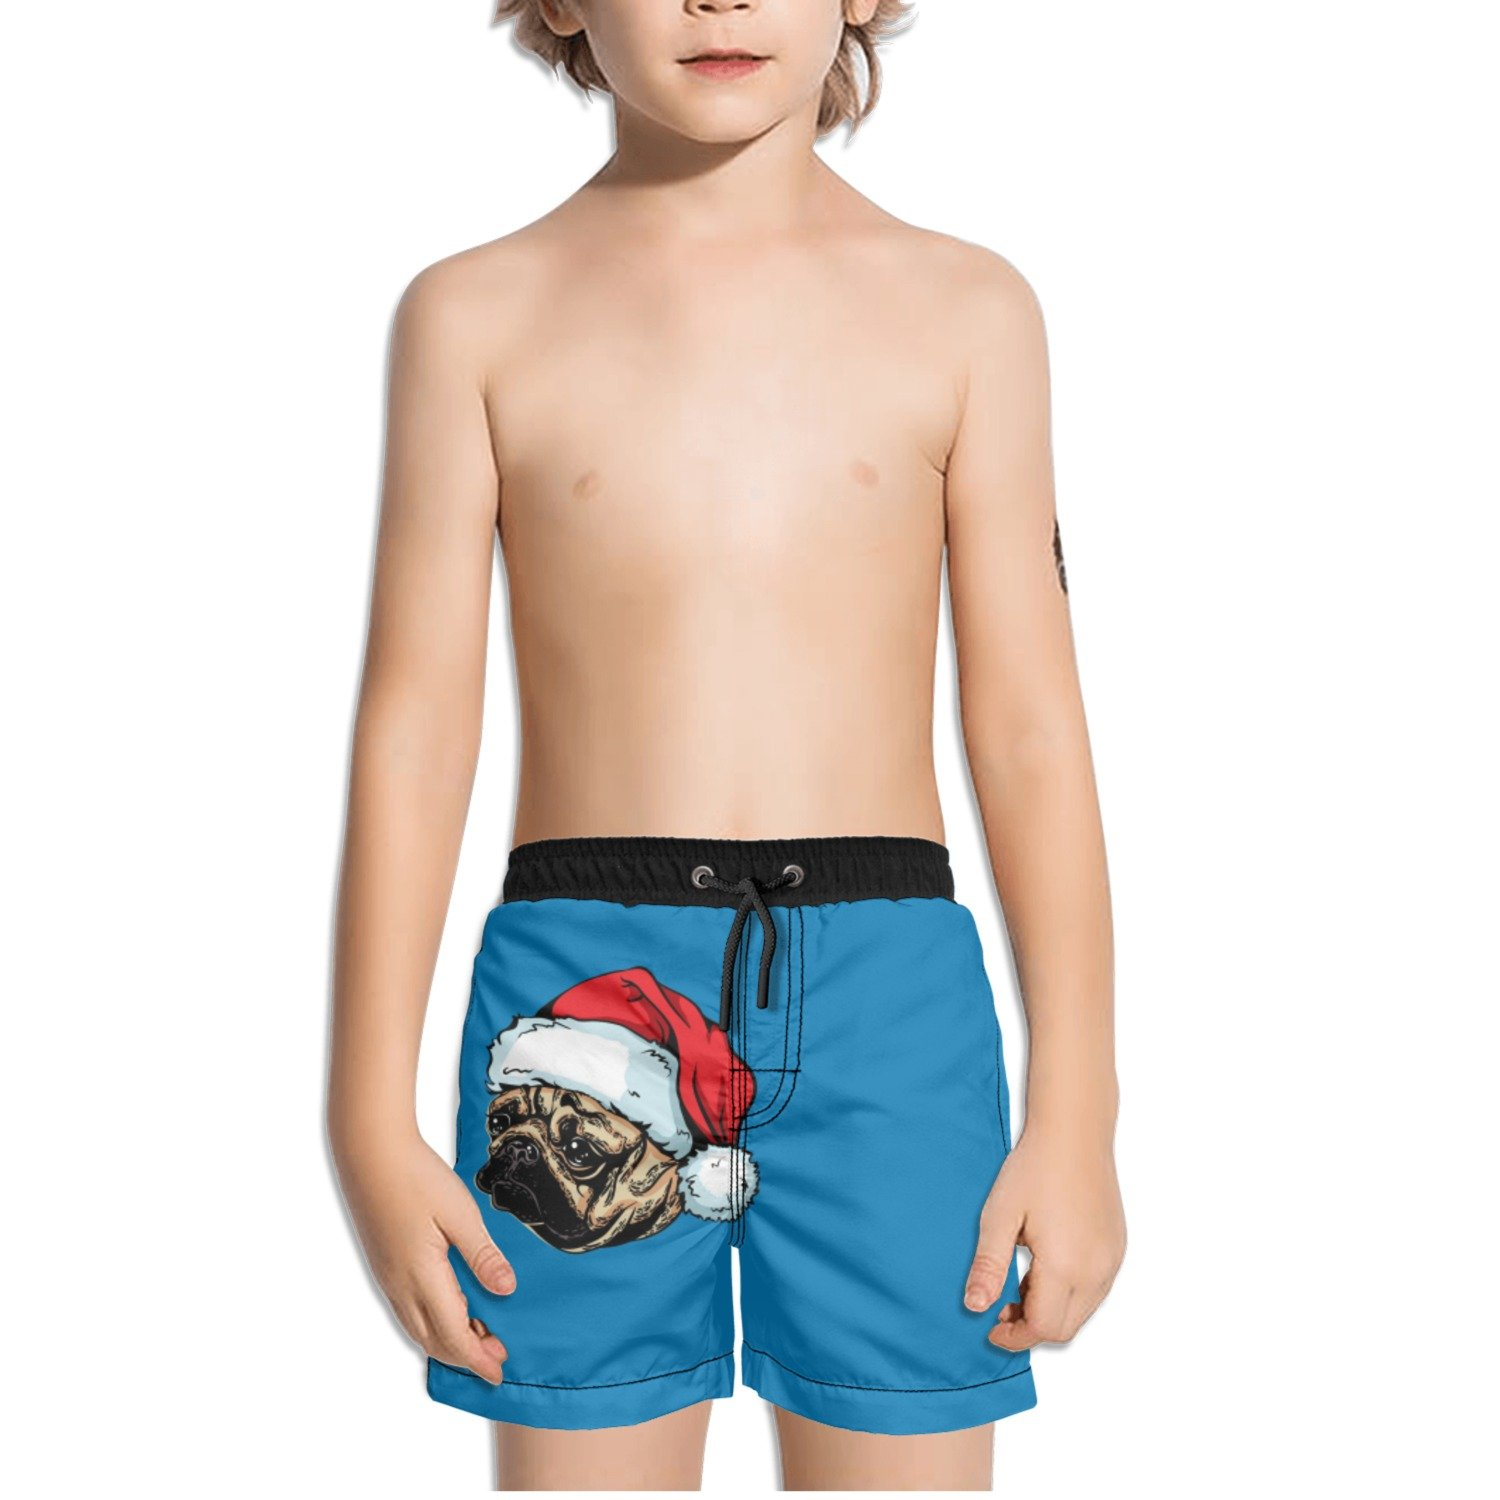 Juliuse Marthar Pug Gifts in Hat Merry Christmas Blue Swim Trunks Quick Dry Beach Board Shorts for Boys